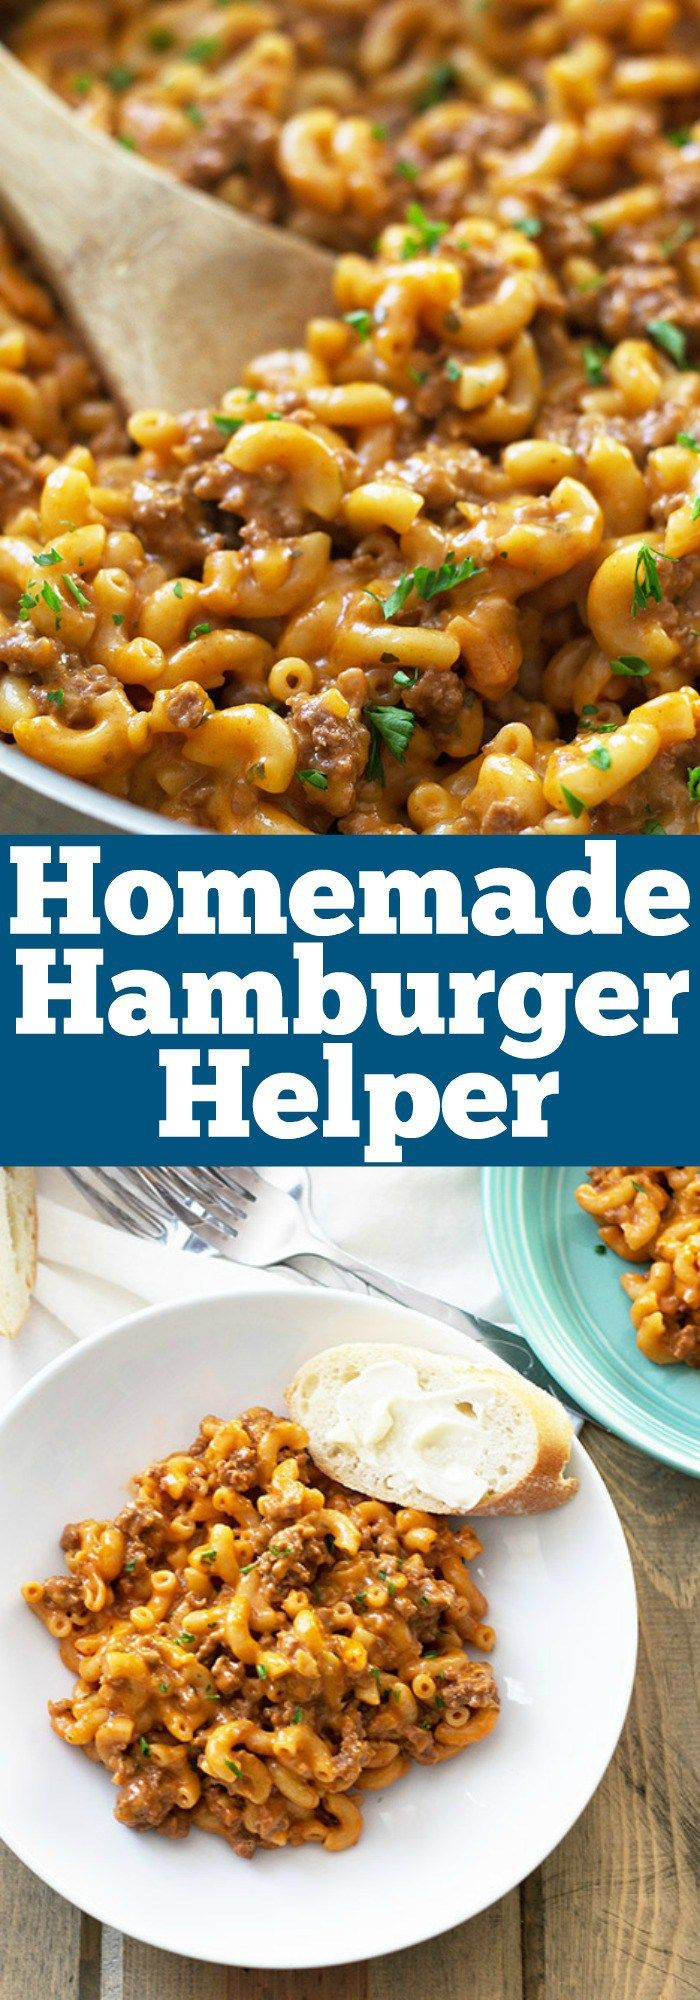 Homemade Hamburger Helper -just as quick and easy as the boxed stuff, but tastes way better! | countrysidecravings.com  Old glen rd